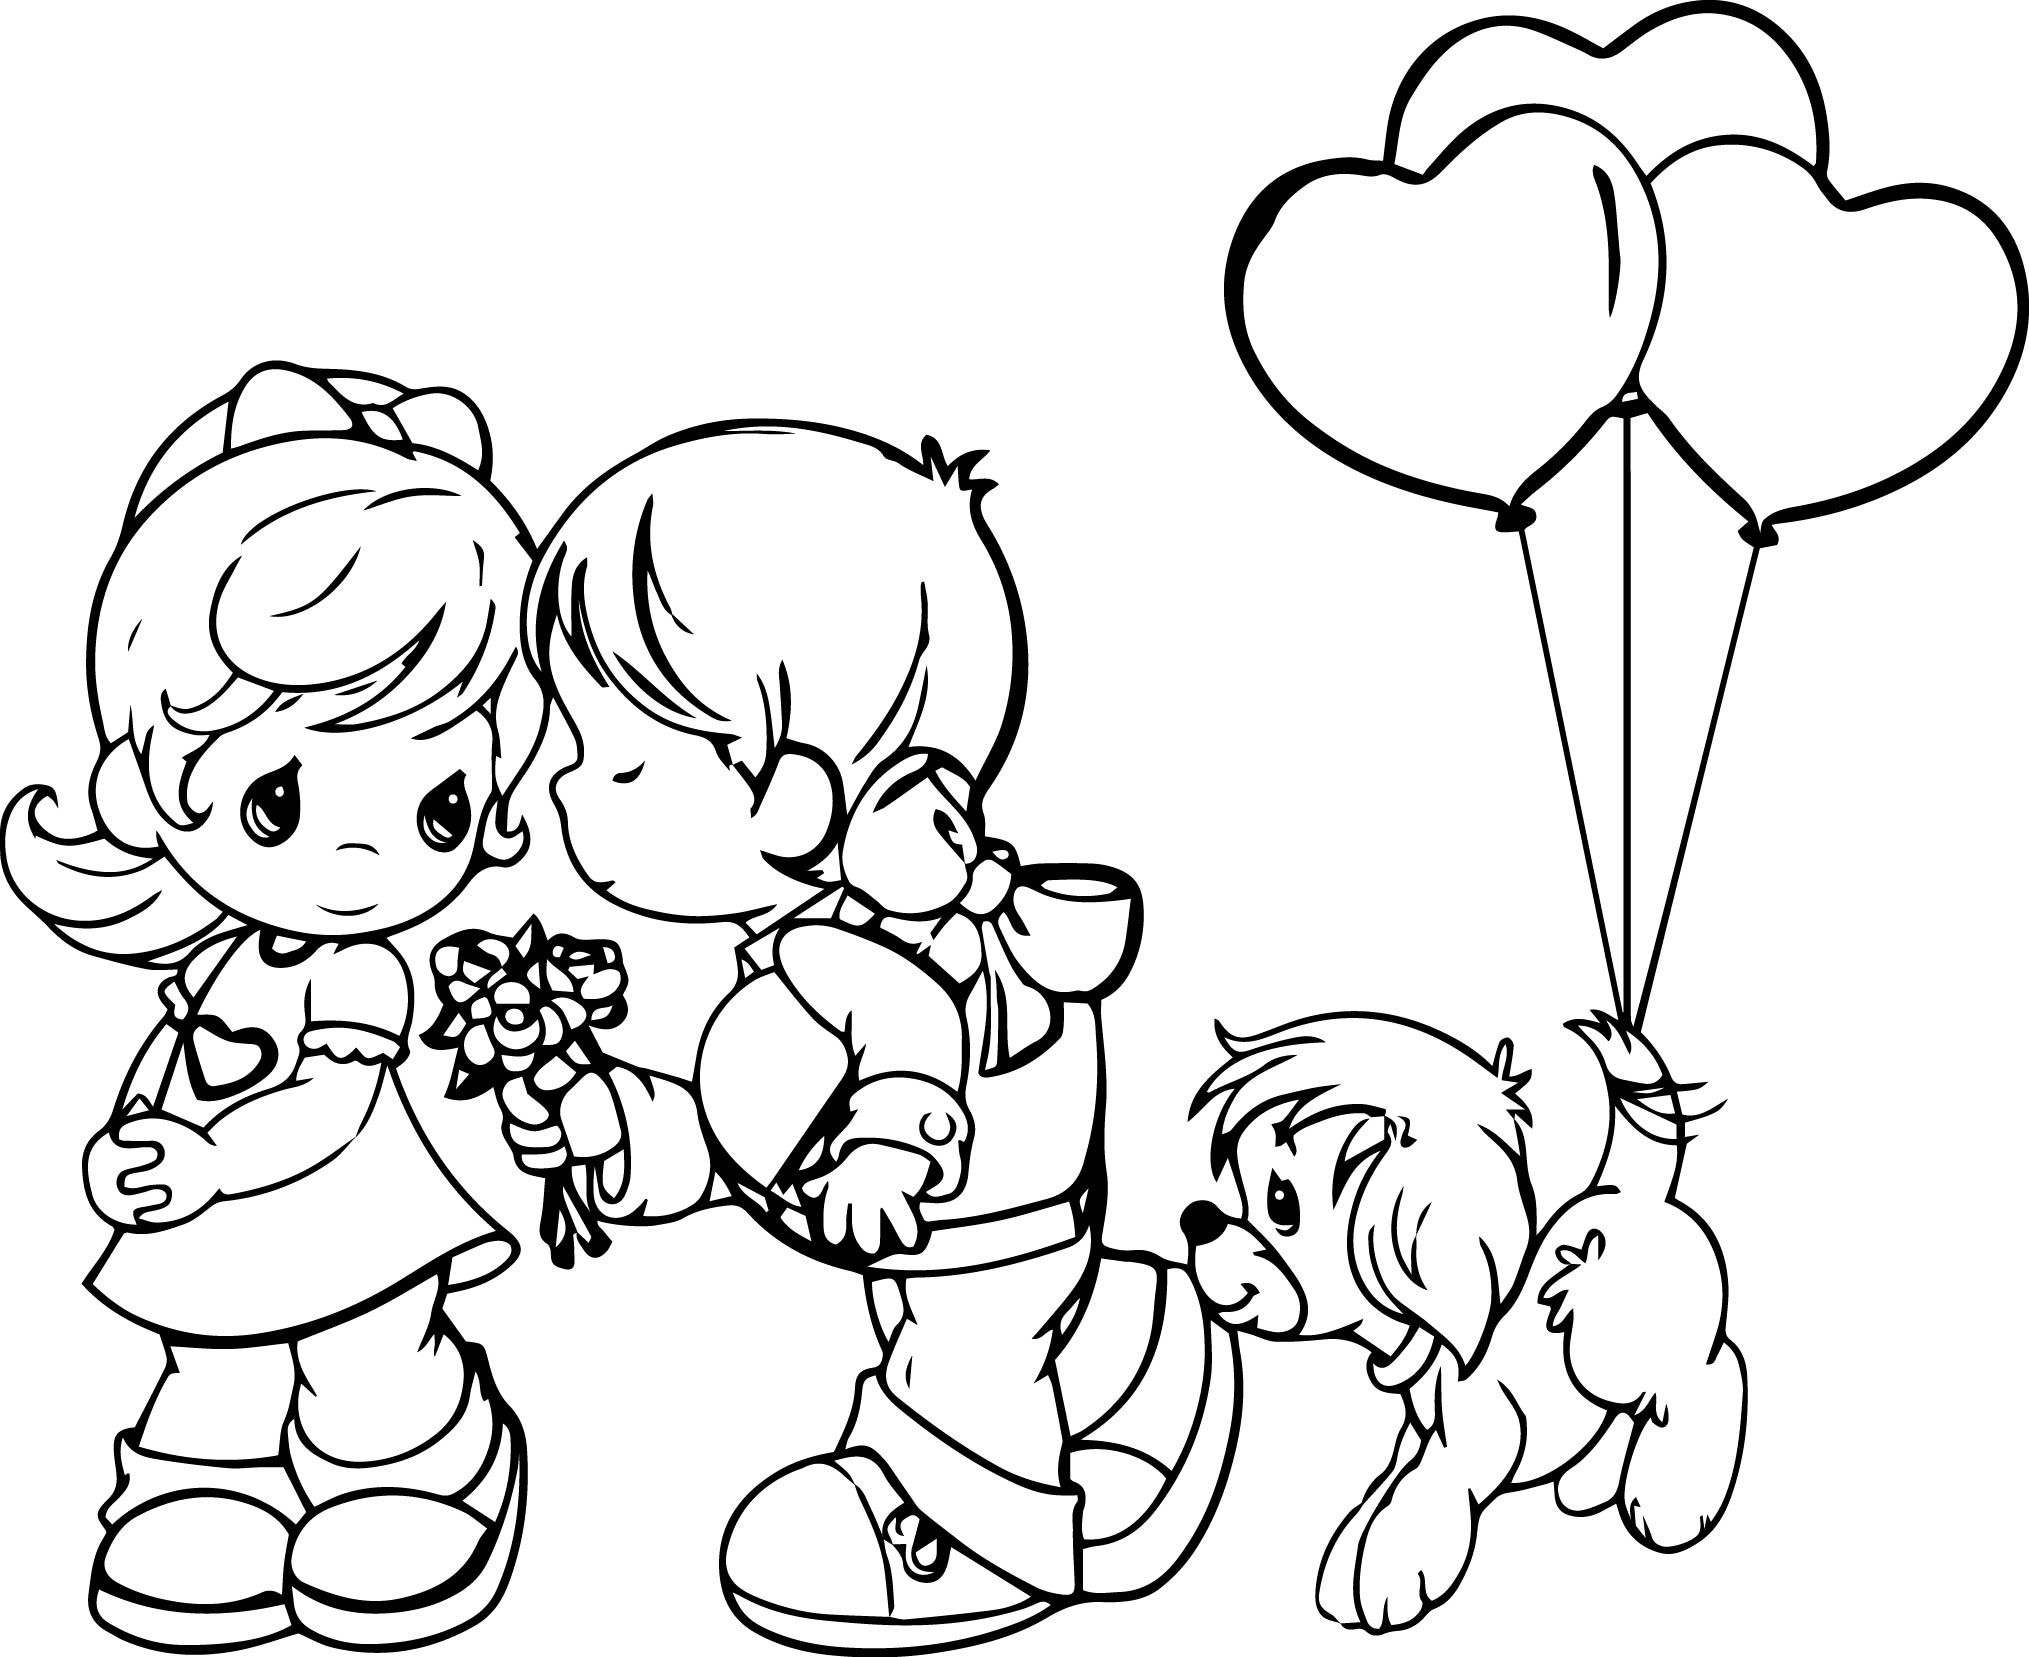 Precious Moments Coloring Pages | Precious moments coloring ...